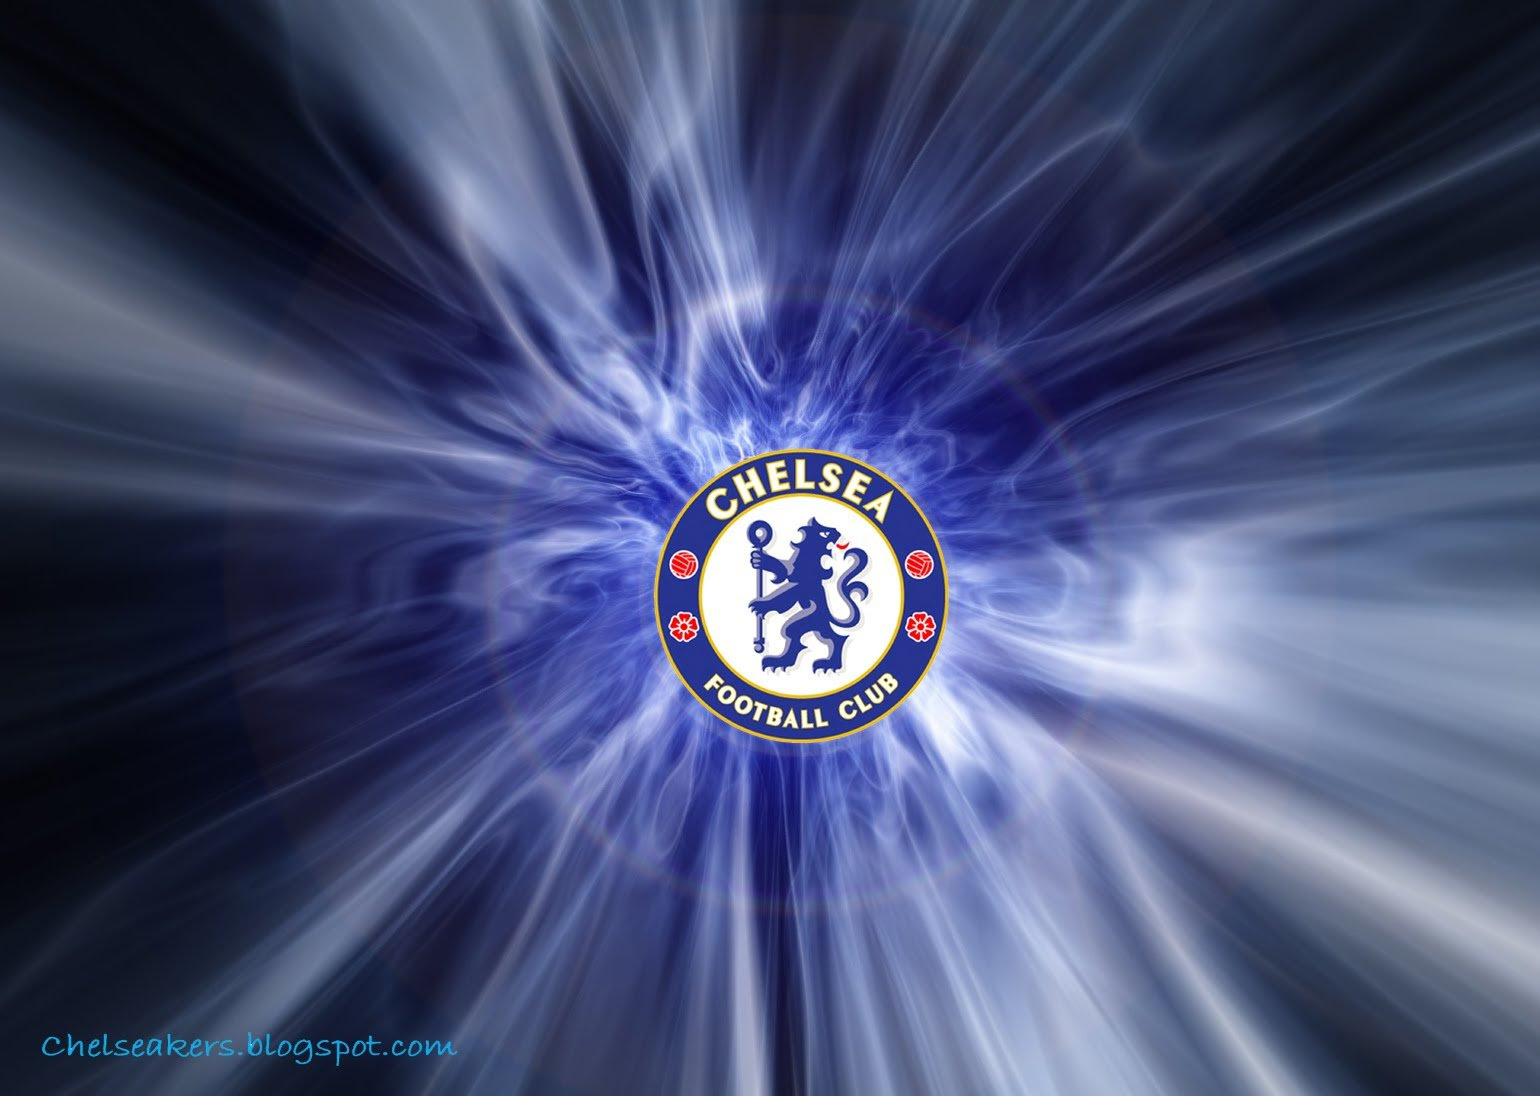 Chelsea Fc Logo Wallpaper Wallpapersafari